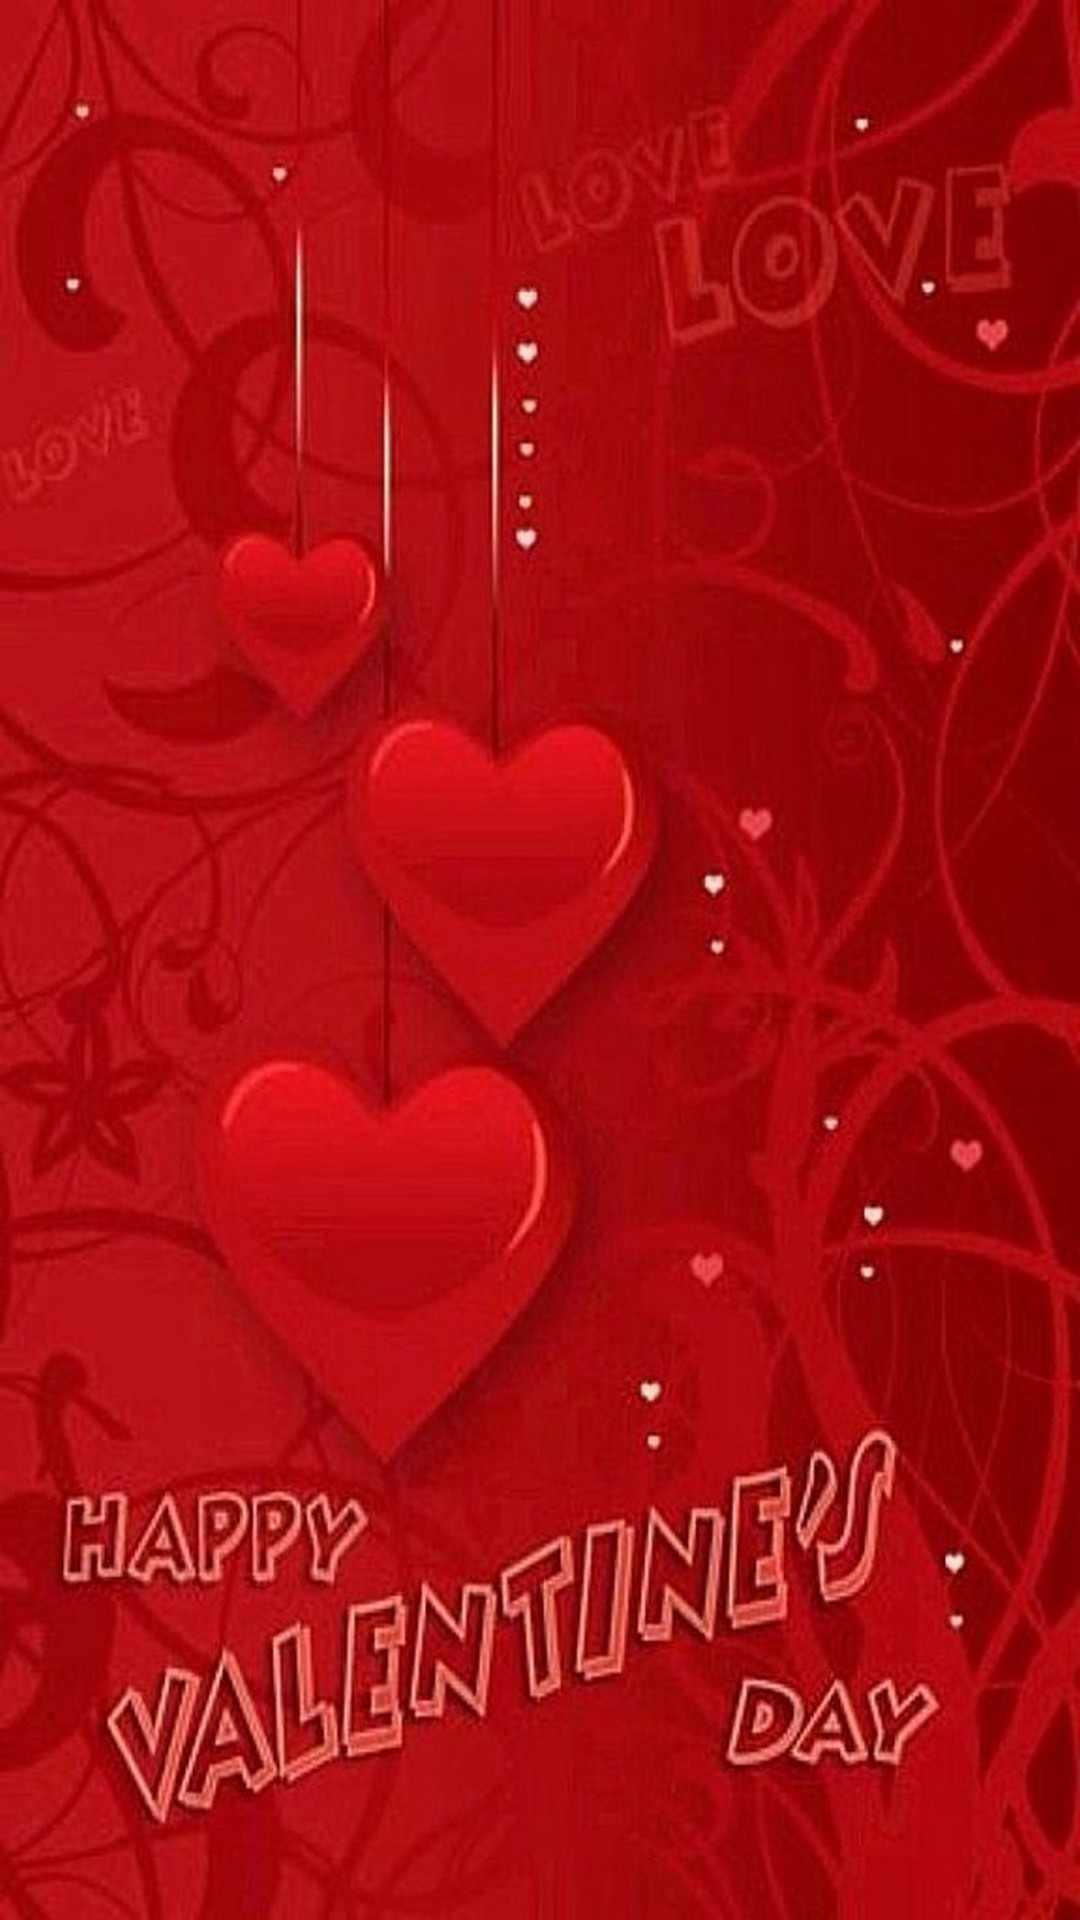 Happy Valentines Day Image For Android